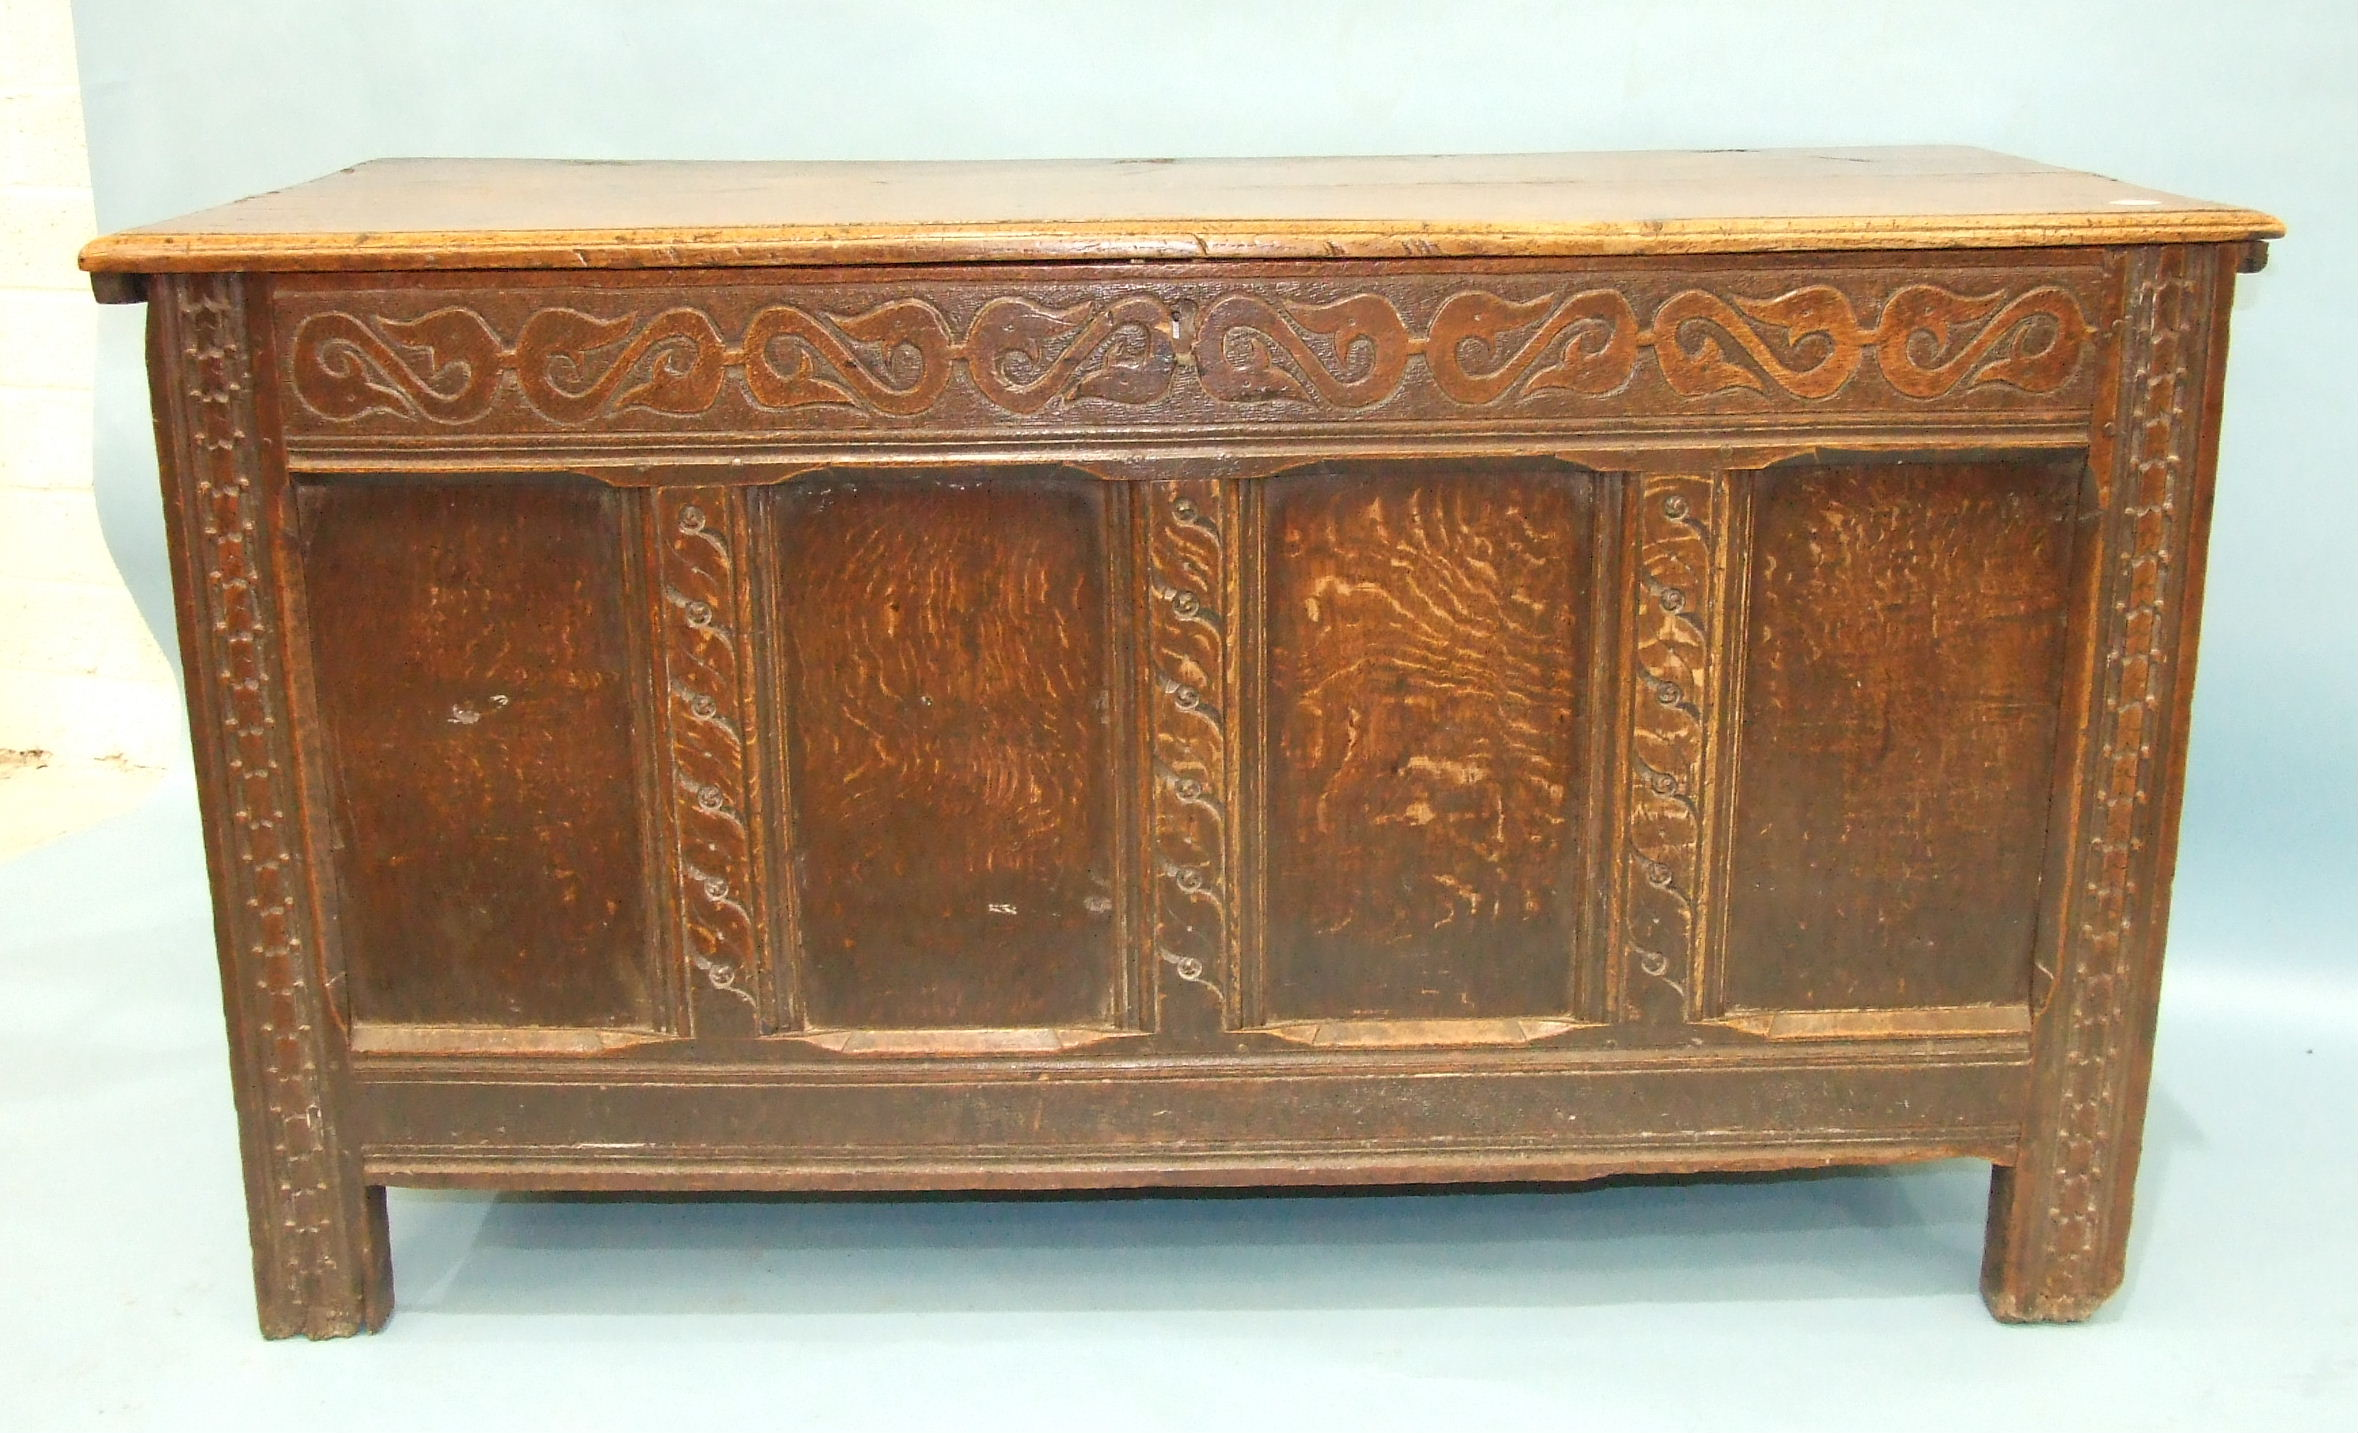 Lot 77 - An antique oak coffer with carved panelled front and sides, stiles extended to form feet, 131cm